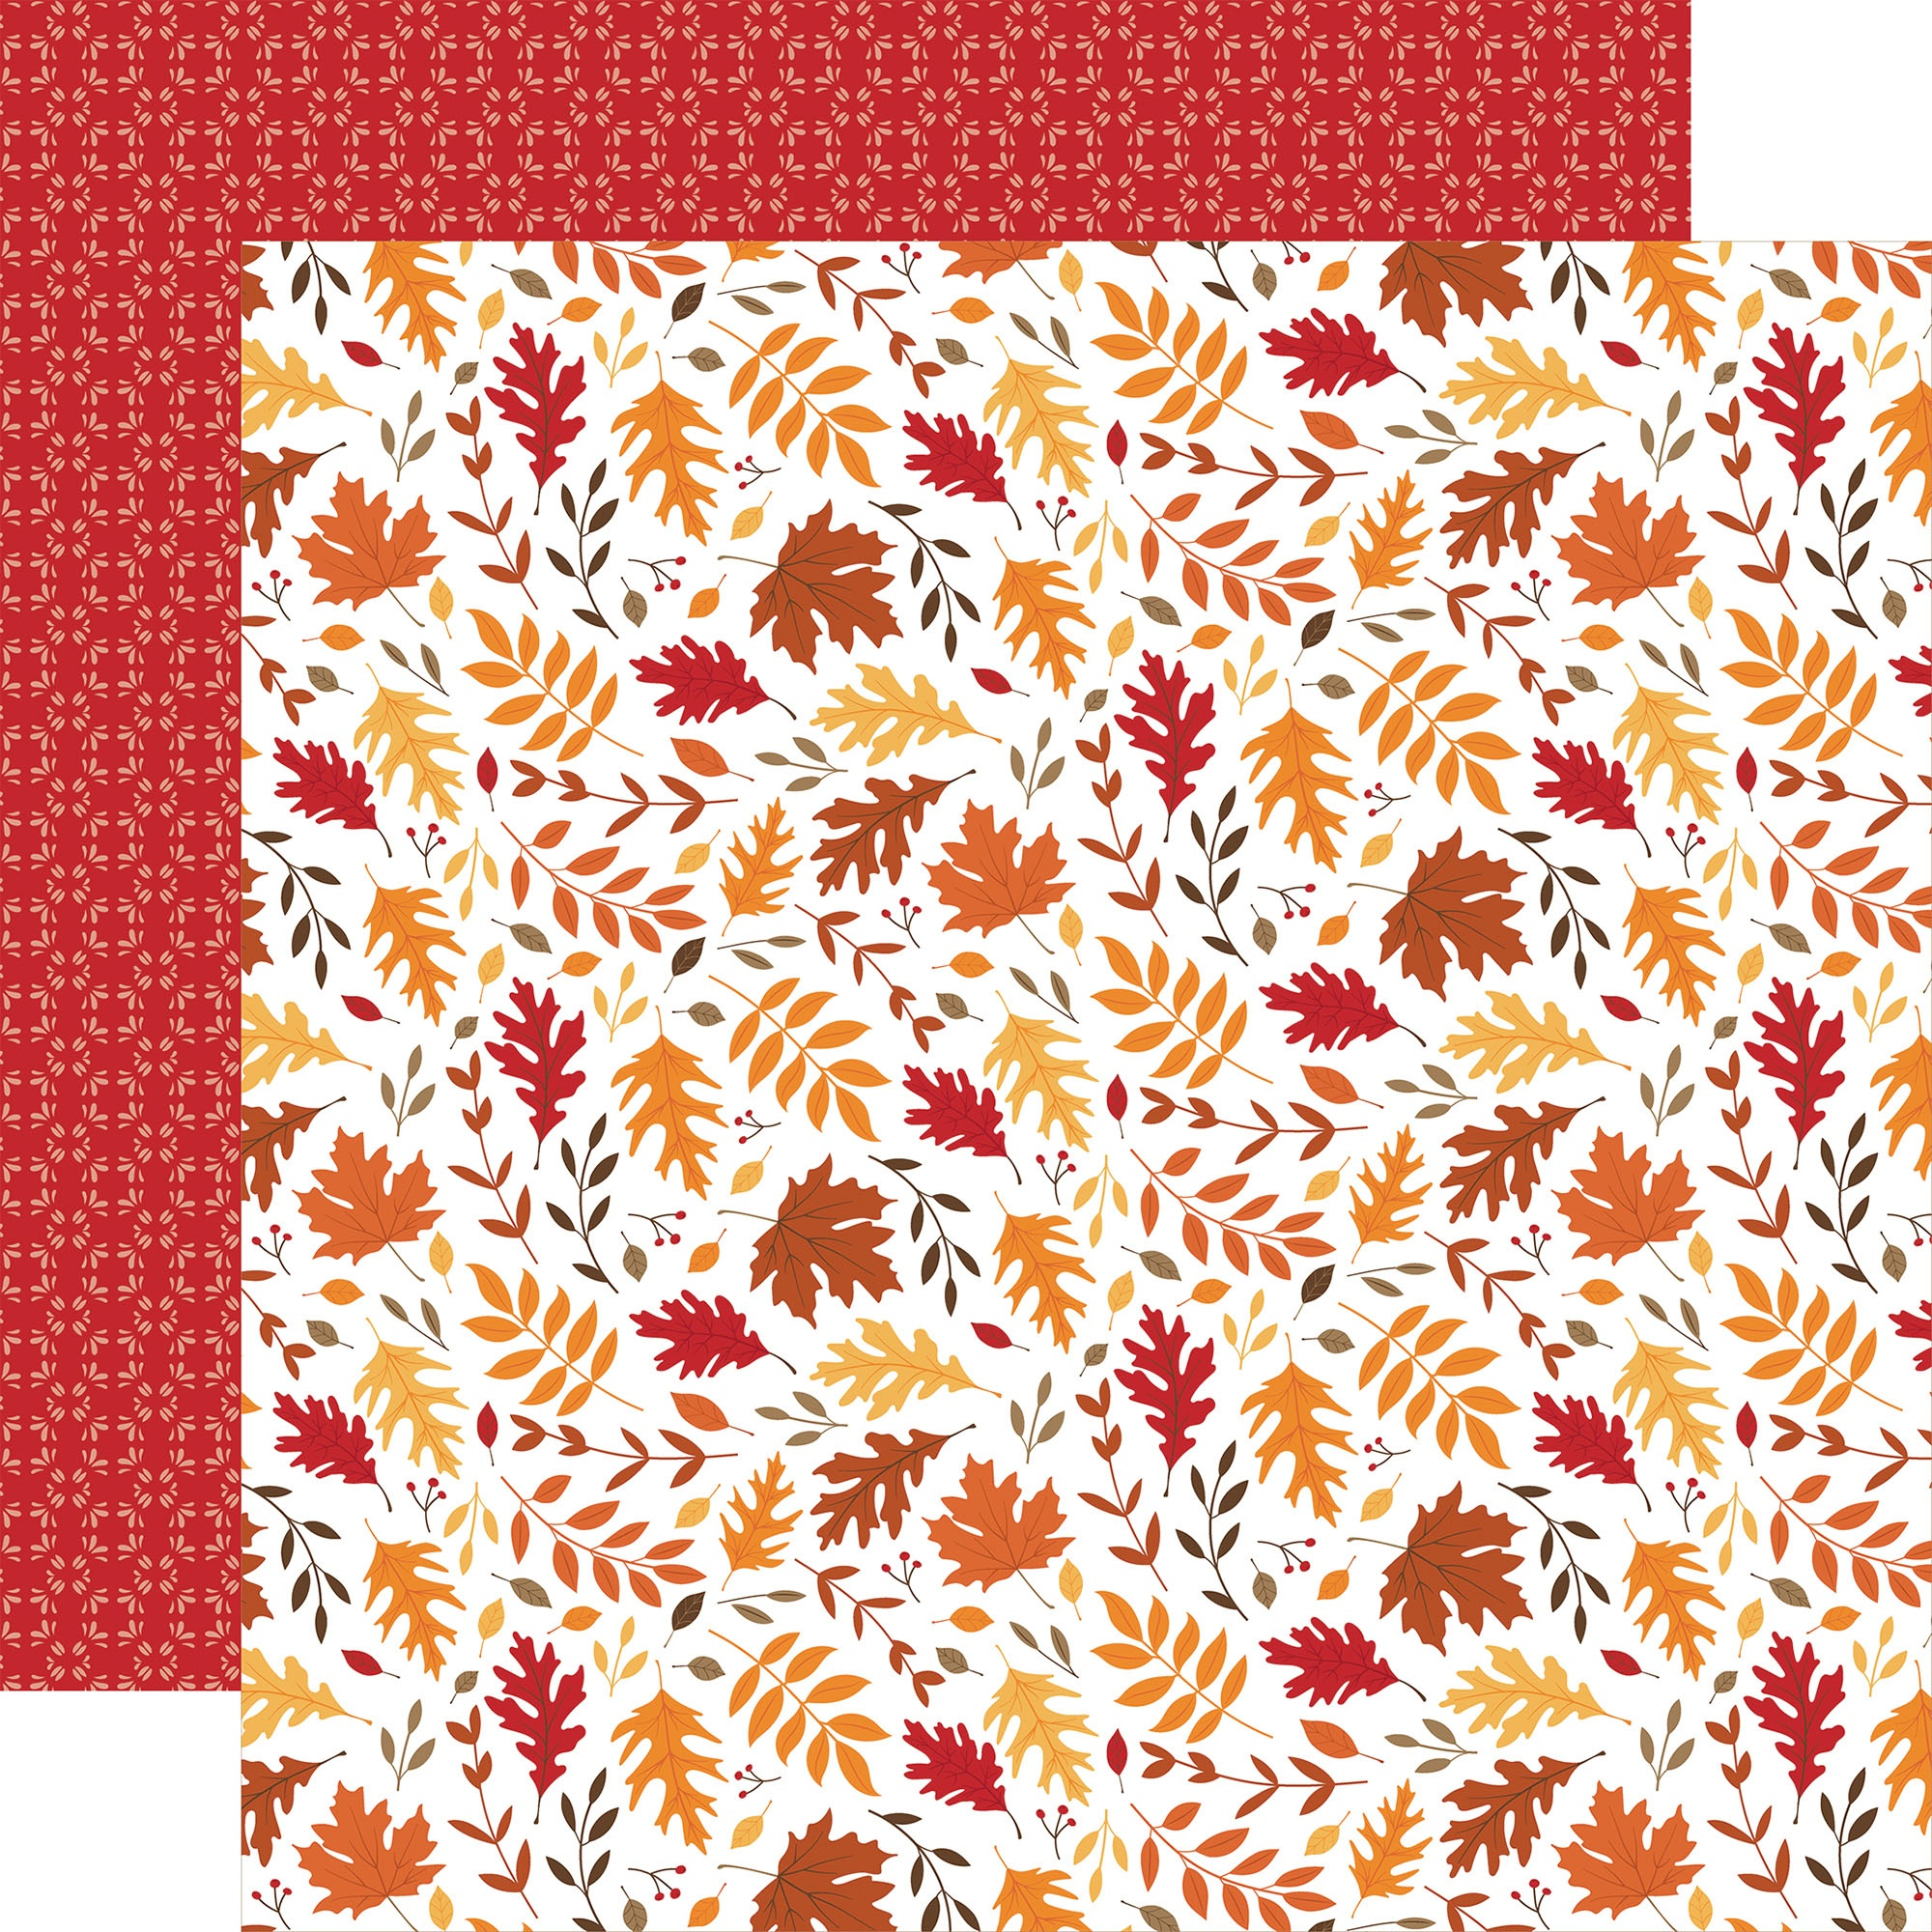 Echo Park - Fall - LEAF PILE - 12x12 Double-Sided Paper